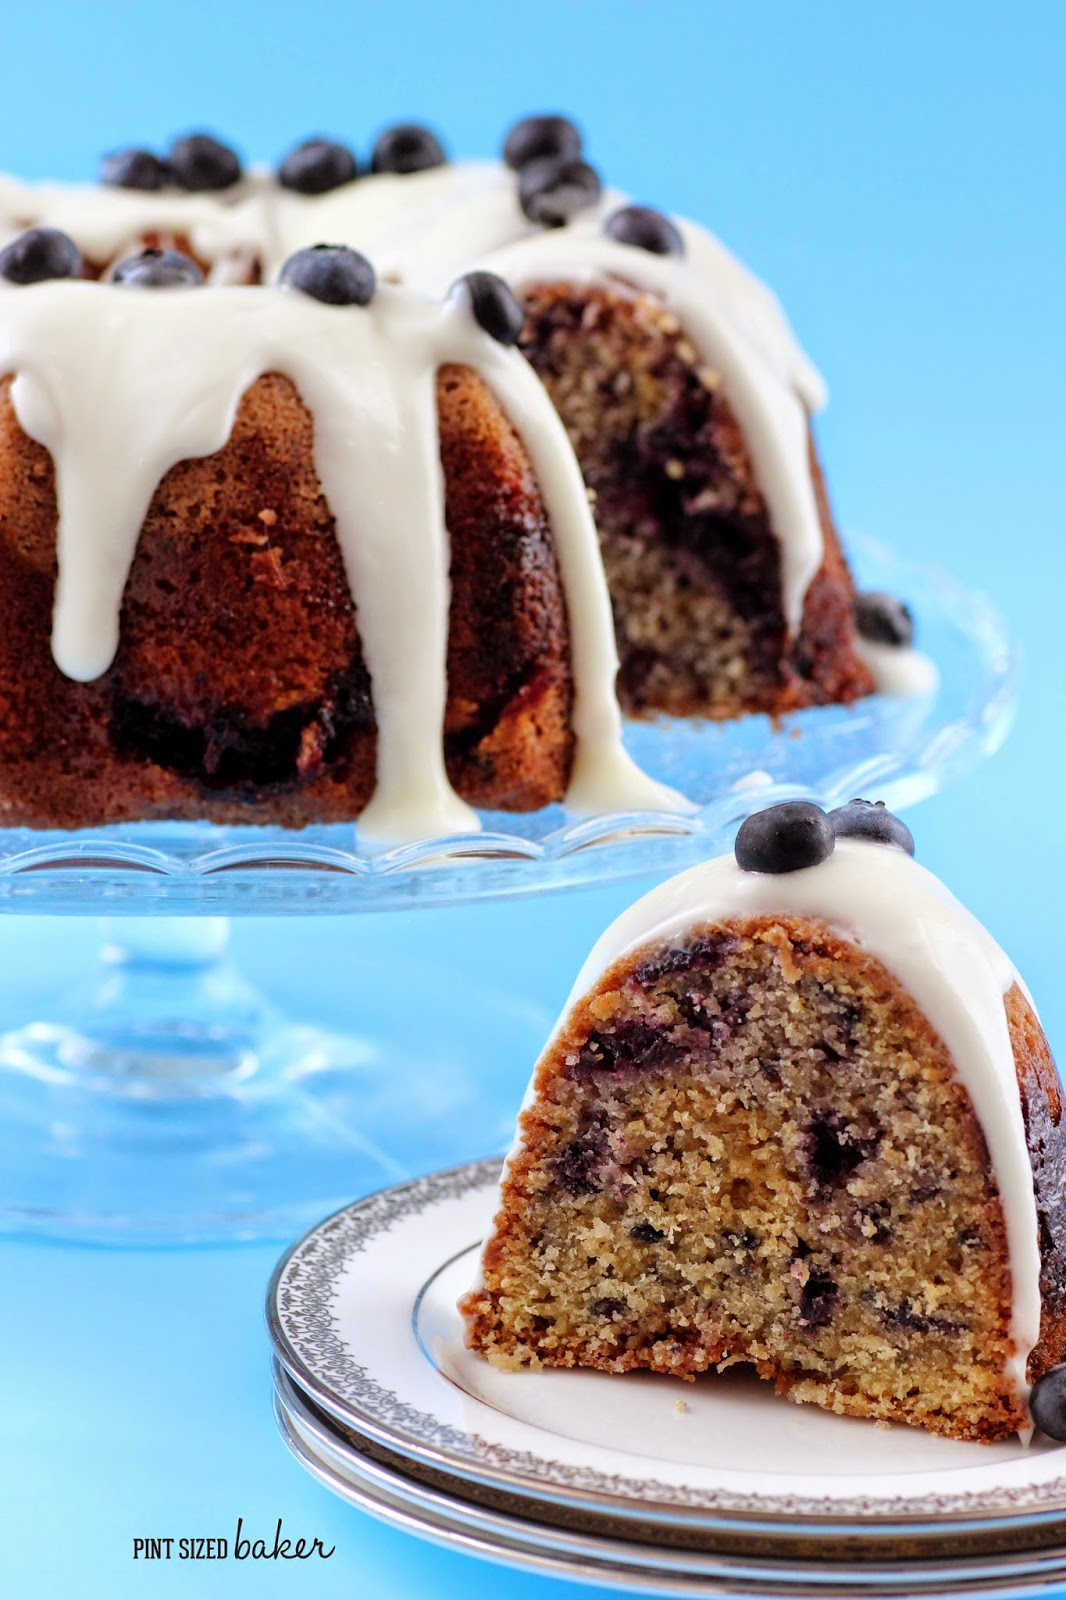 Every slice of this bundt cake is different with all the blueberry marbling inside!